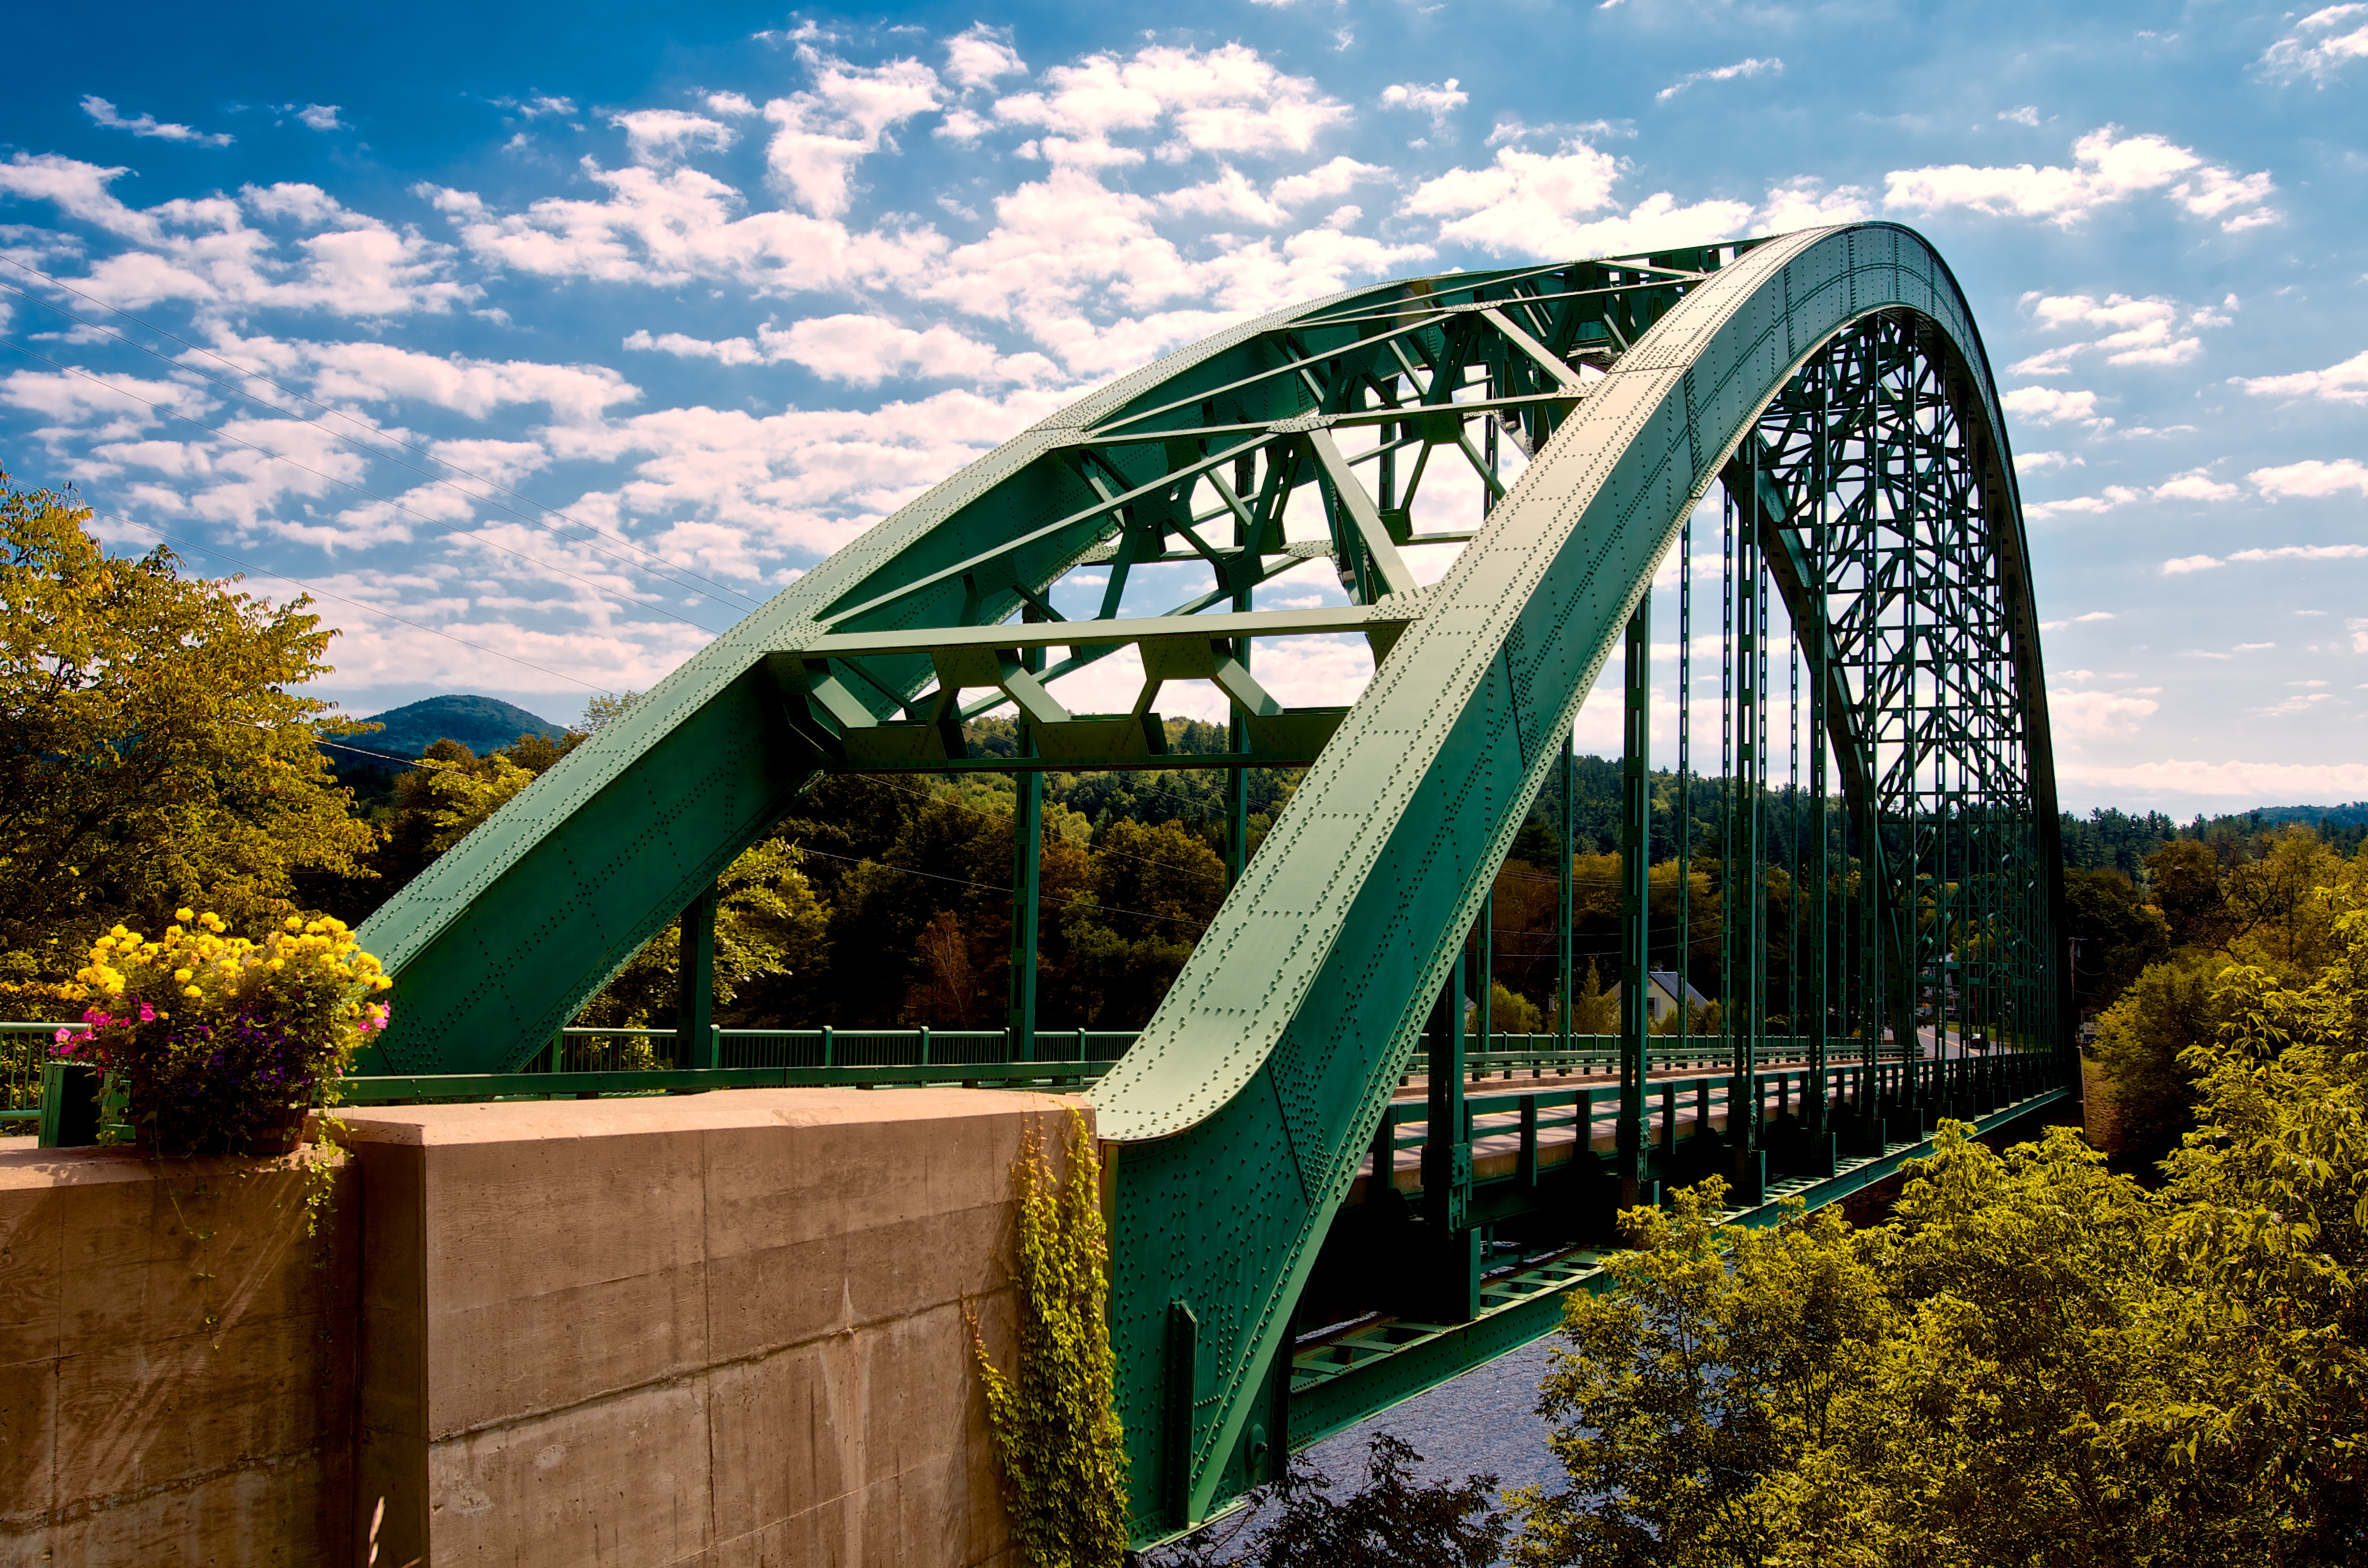 A straight-on view of the iconic Samuel Morey Bridge located in Orford, NH